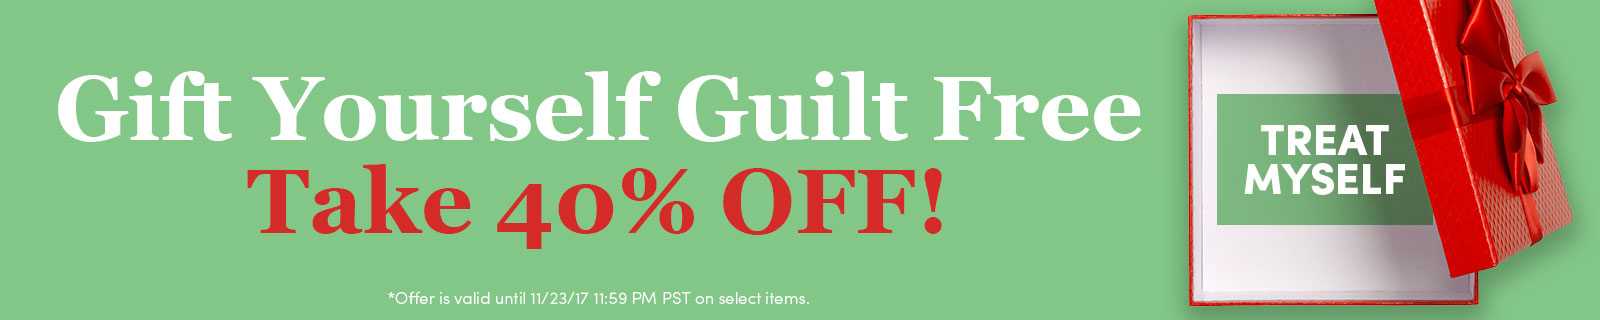 Gift Yourself Guilt Free–Take 40% OFF! [Treat Myself]